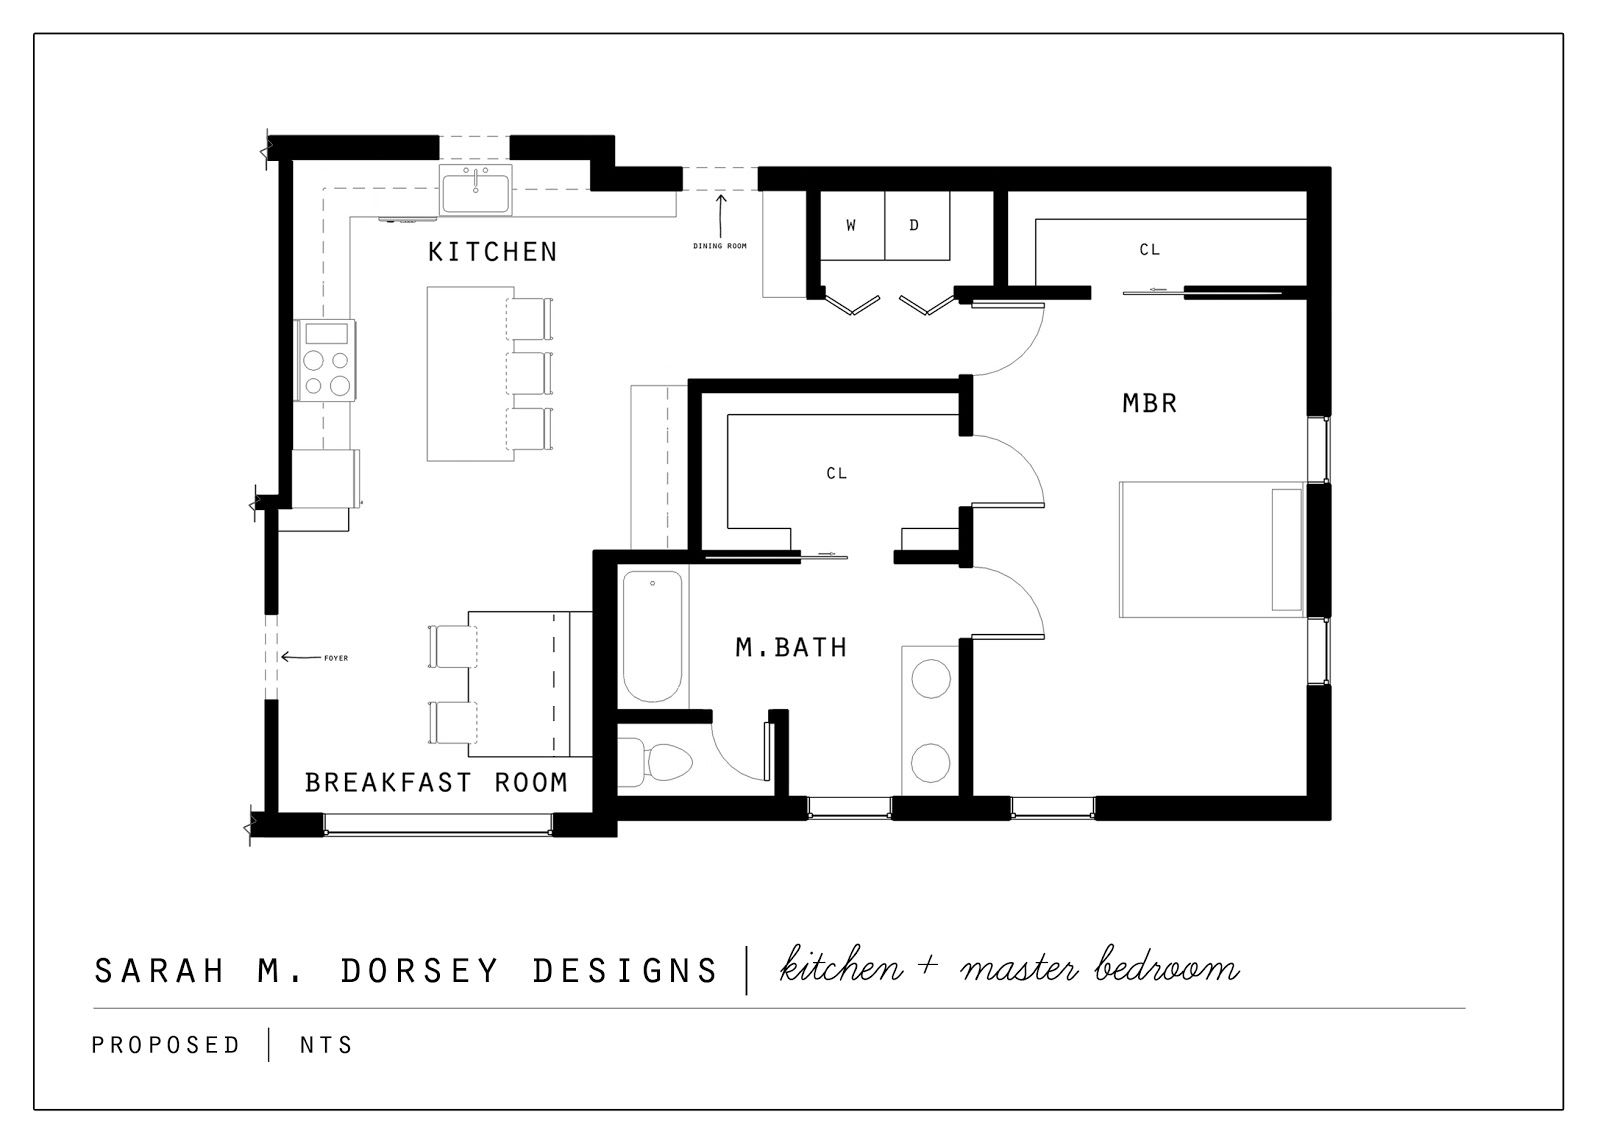 Floor plans for master bedroom additions bedroom addition plans master bedroom suite addition Master bedroom addition plans